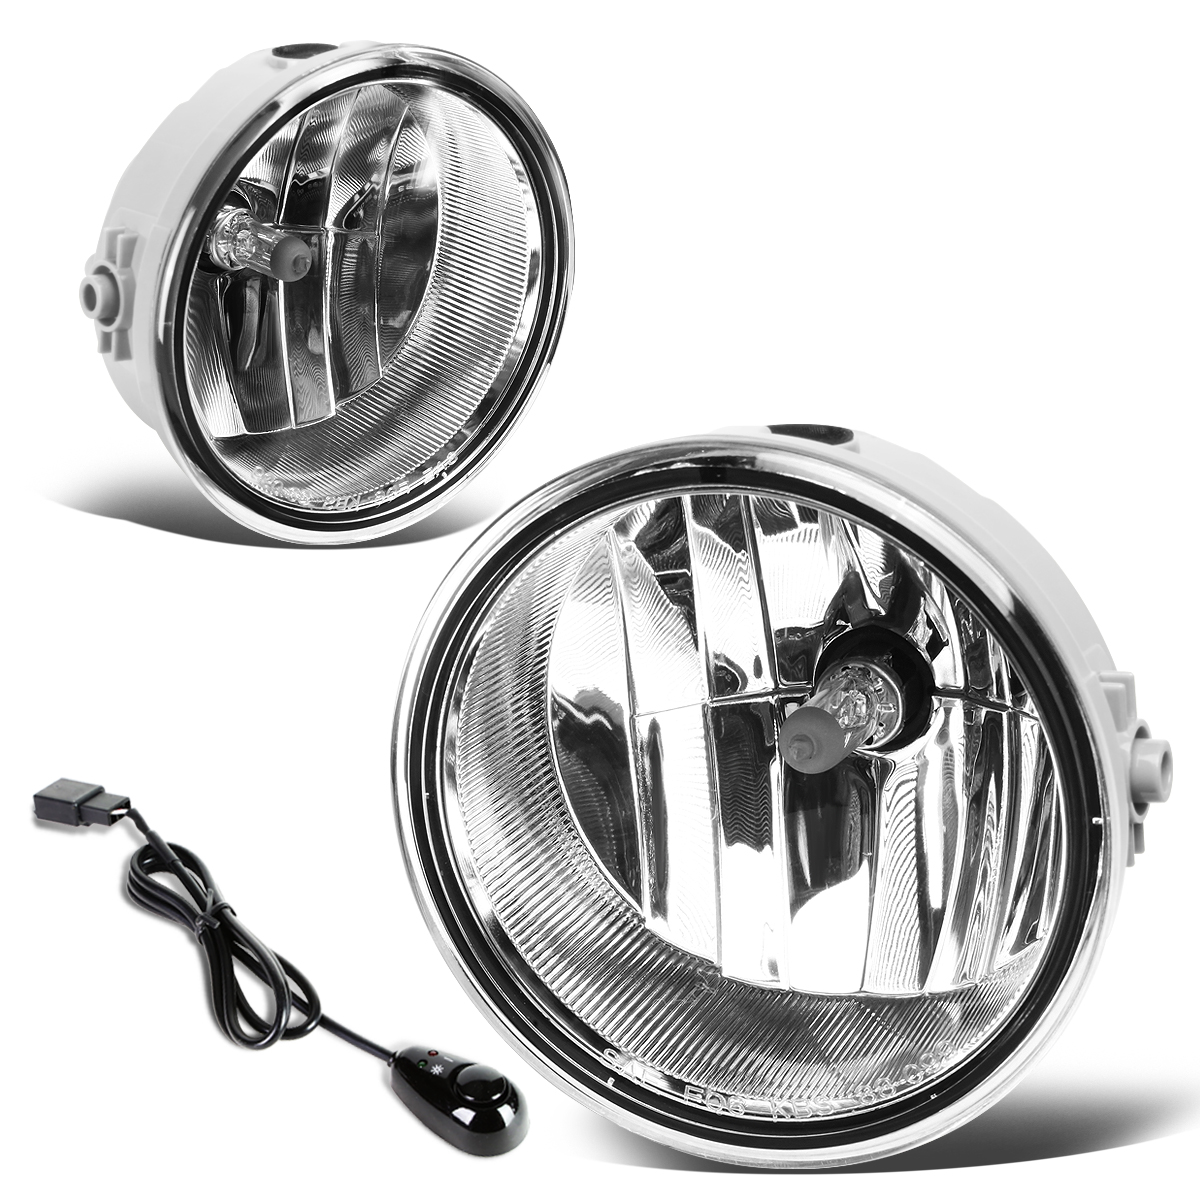 06 08 Mark Lt Crystal Lens Oe Bumper Fog Lights